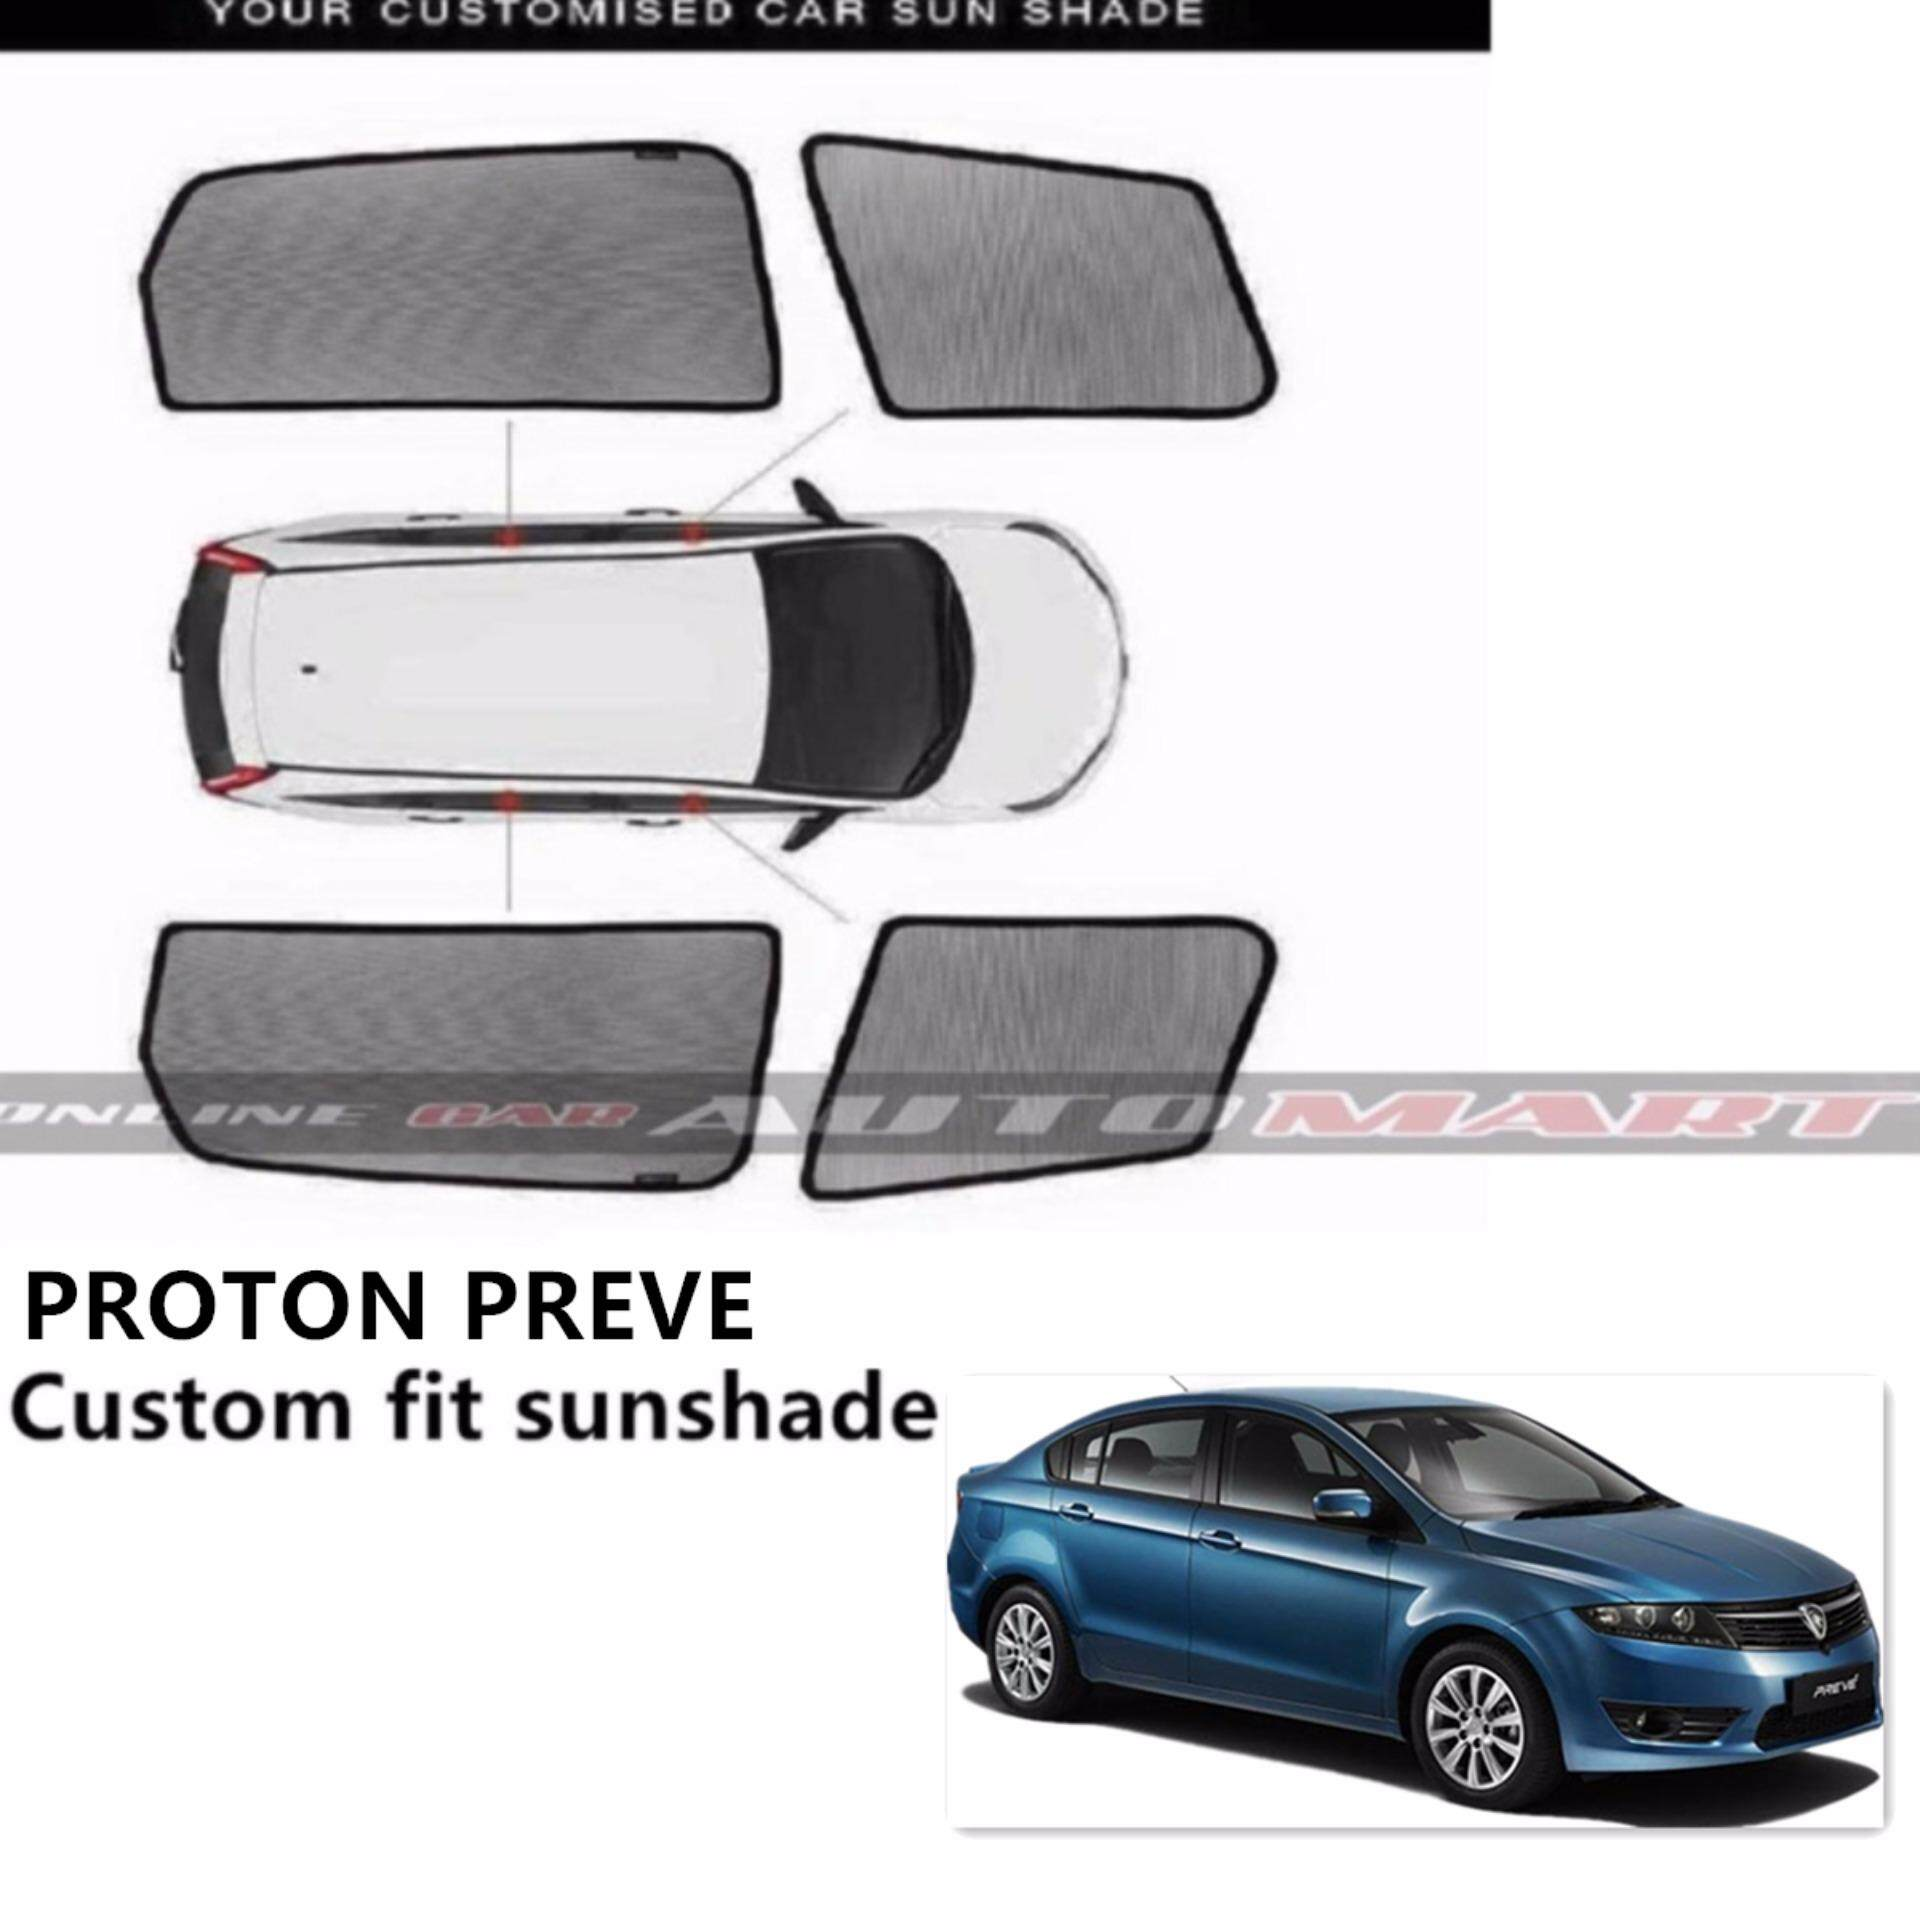 Custom Fit OEM Sunshades/ Sun shades for Proton Preve - 4pcs